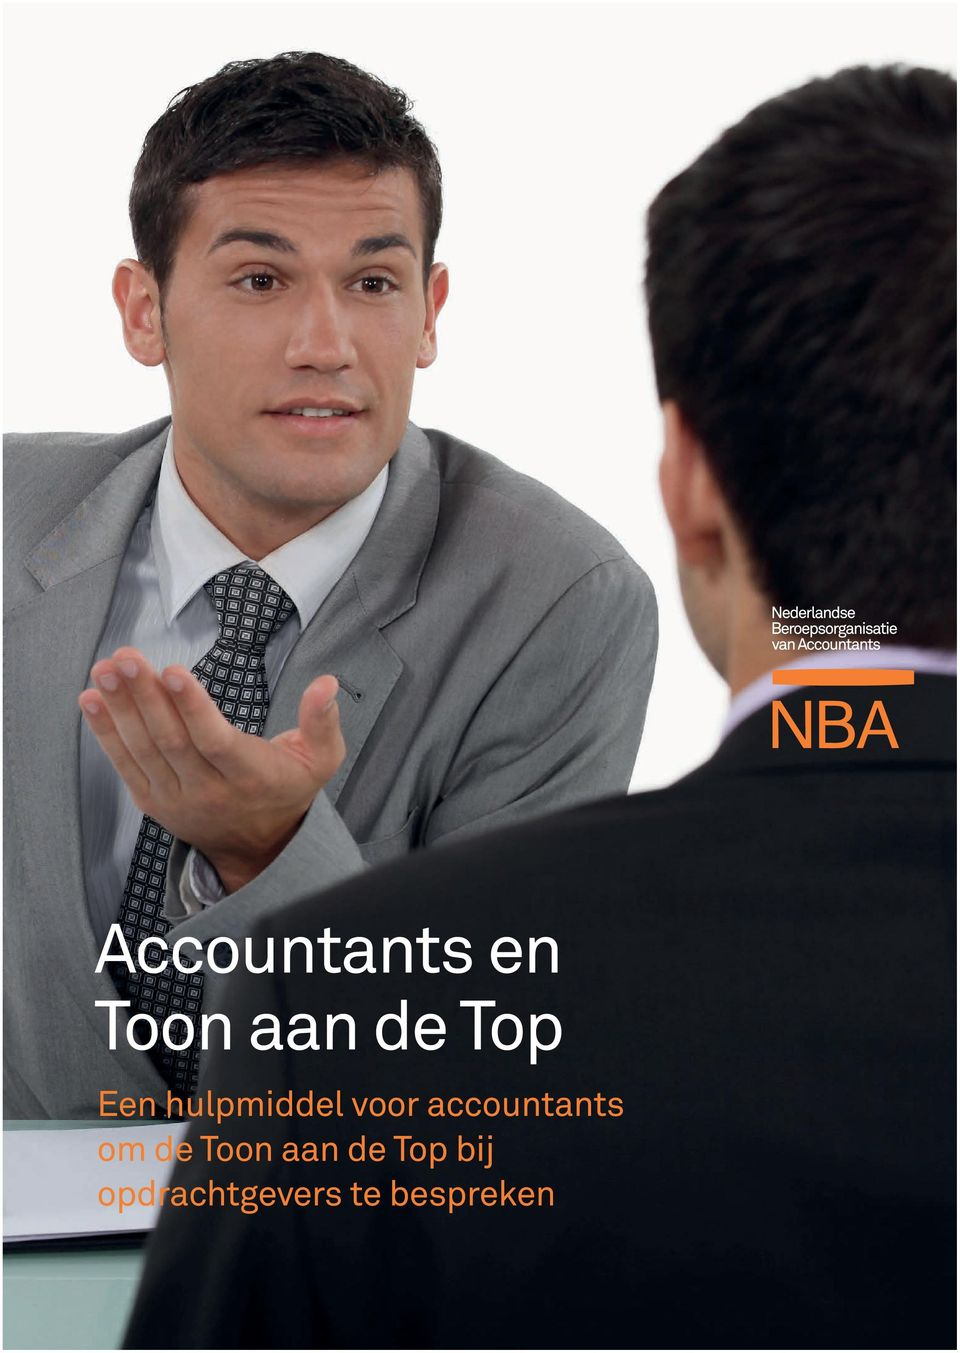 accountants om de Toon aan